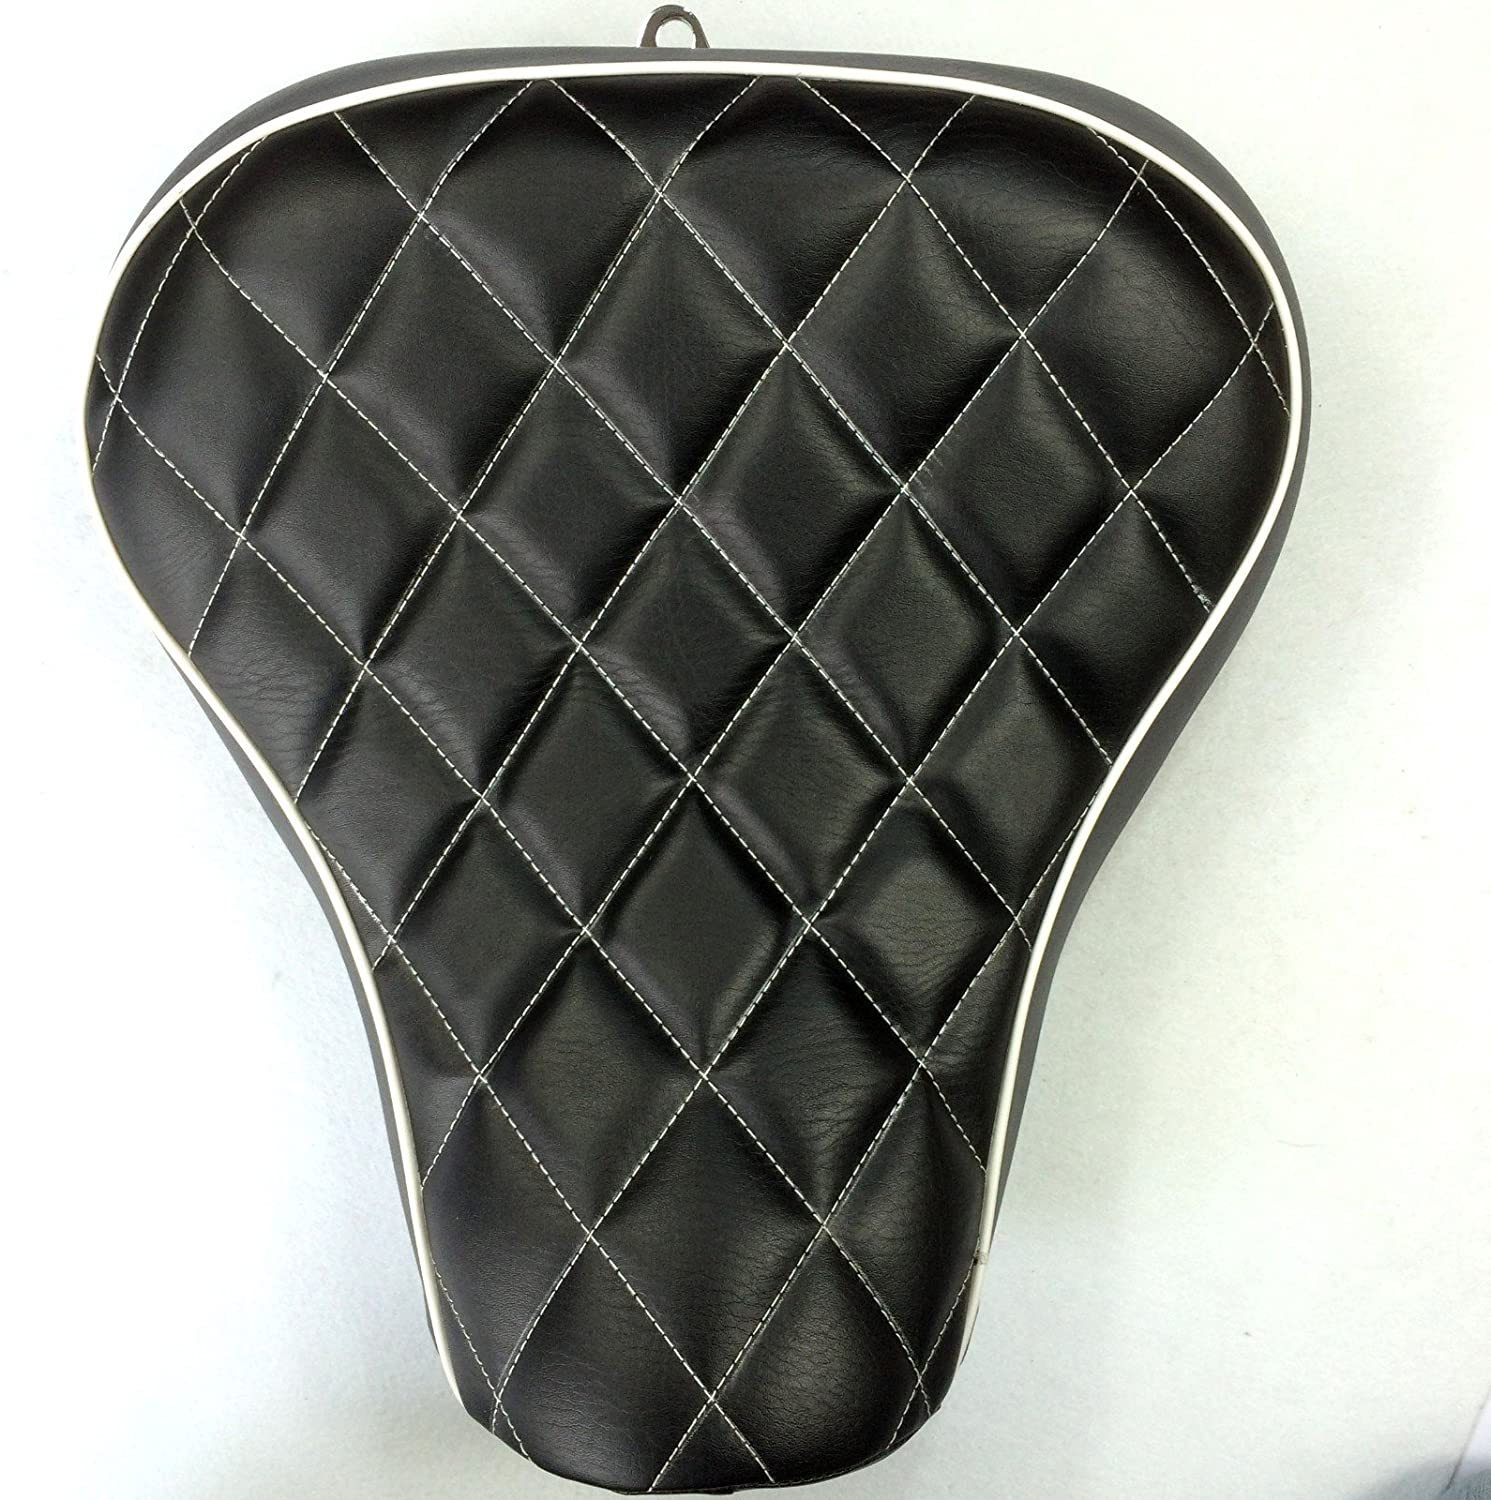 HTTMT MT500-07D Motorcycle Black Custom Front Solo Driver Diamond Stitch Style Leather SeatCompatible with 2005 2006 2007 2008 2009 2010 2011 2012 2013 Harley Davidson XL 1200S Sportster